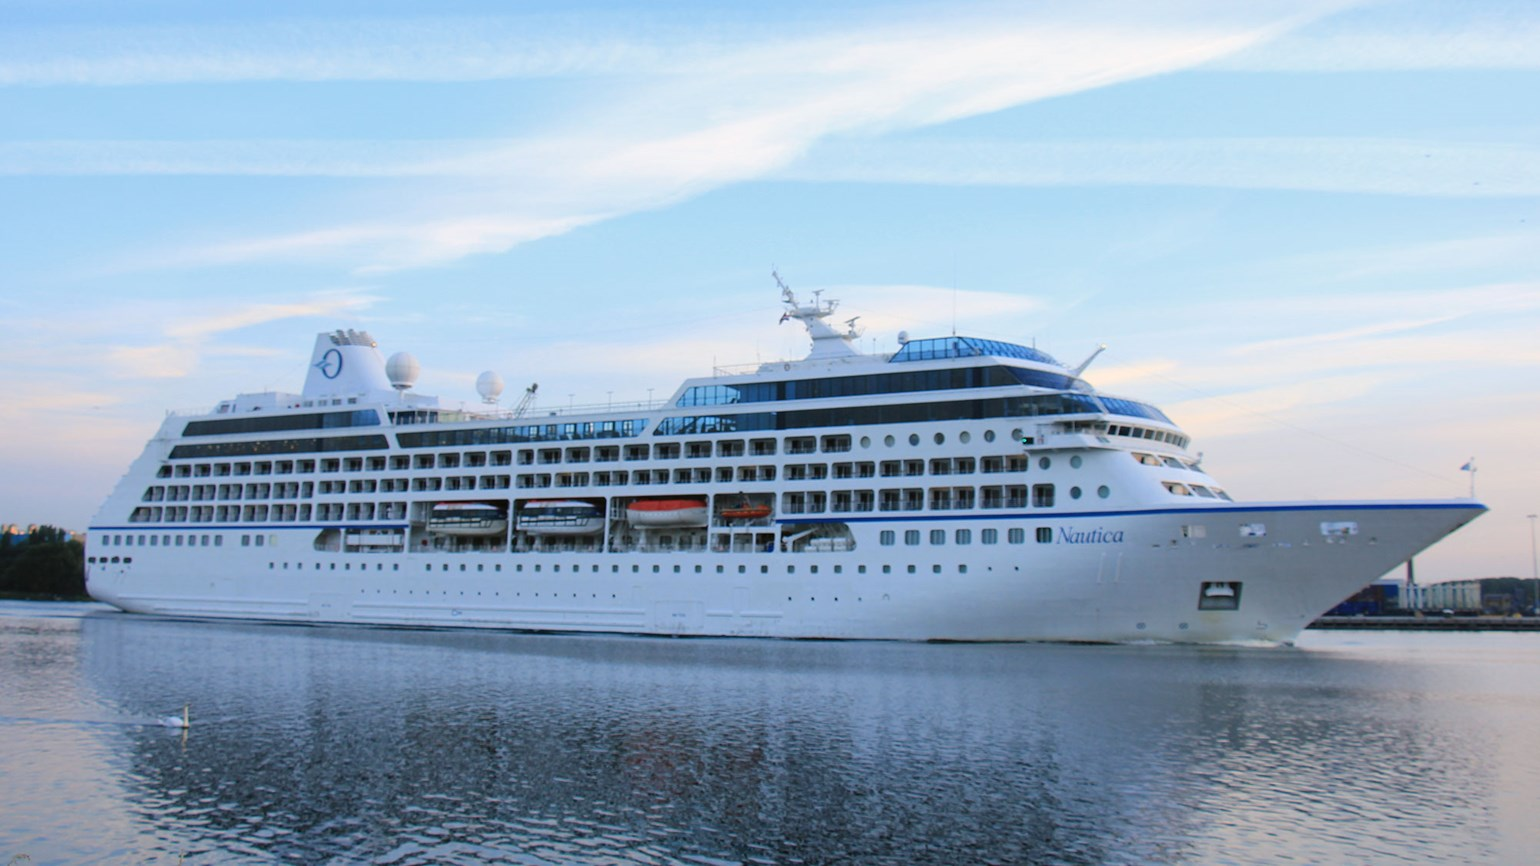 Luxury cruise lines get better at finding new customers